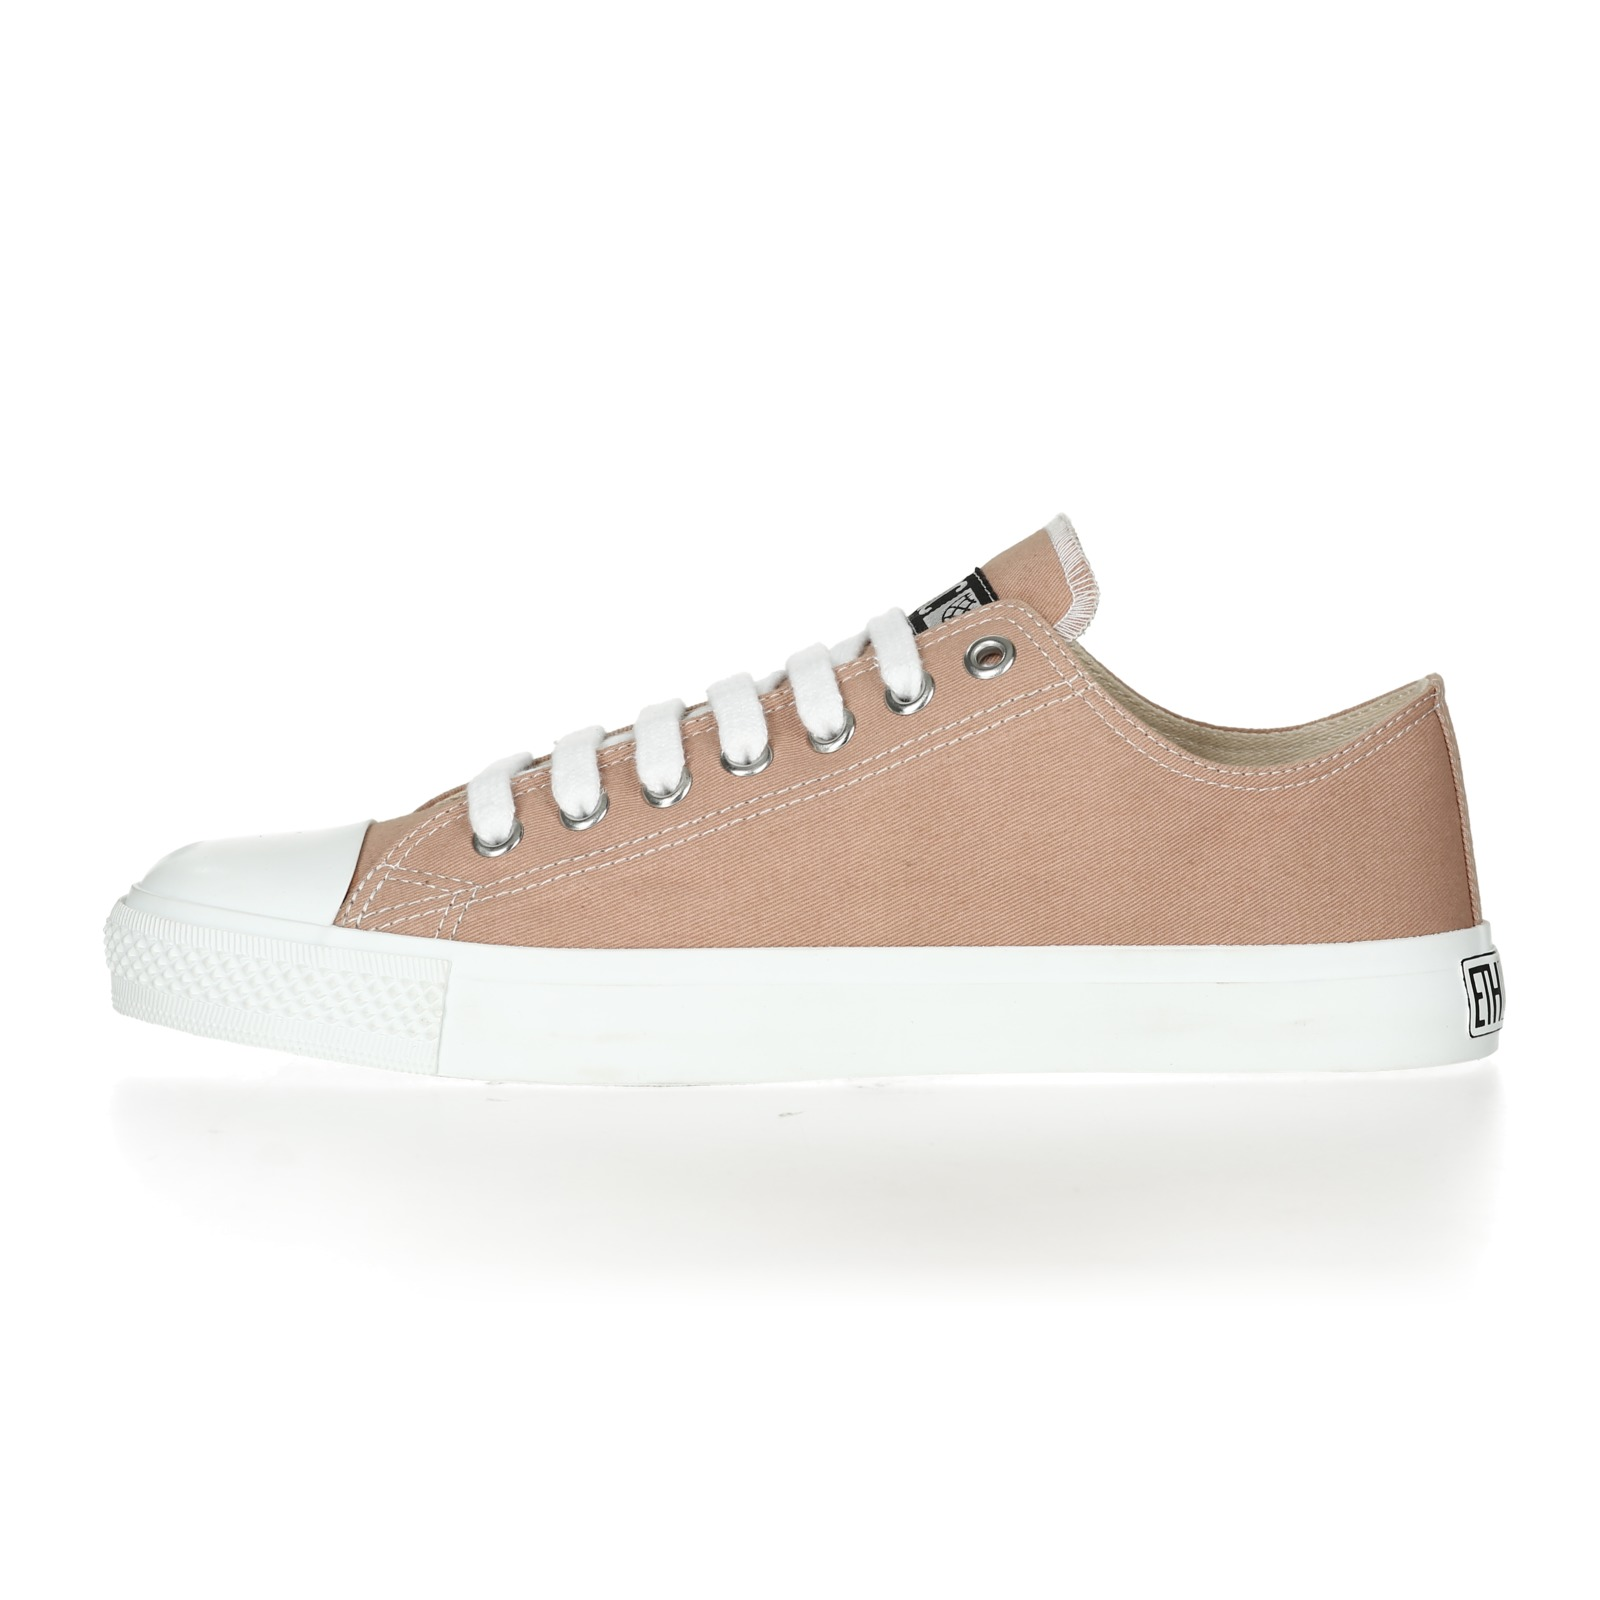 FAIR TRAINER WHITE CAP LoCut COLLECTION 17 LIGHT CLAY| JUST WHITE – OUTLET